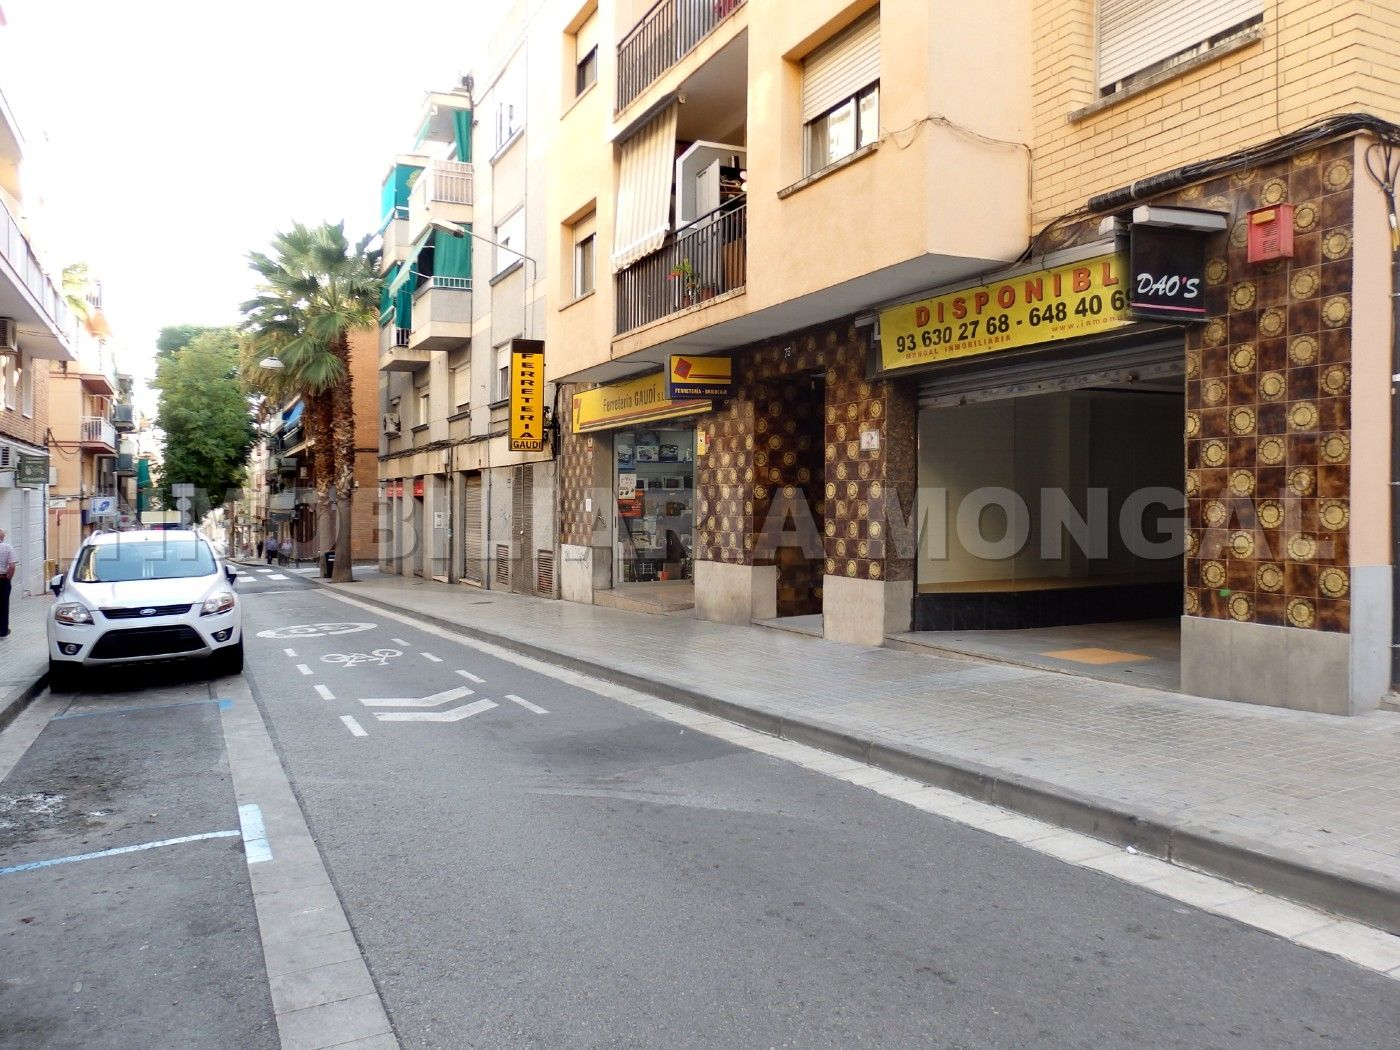 Lloguer Local Comercial en Carrer antoni gaudí, 75. Amplio local comercial